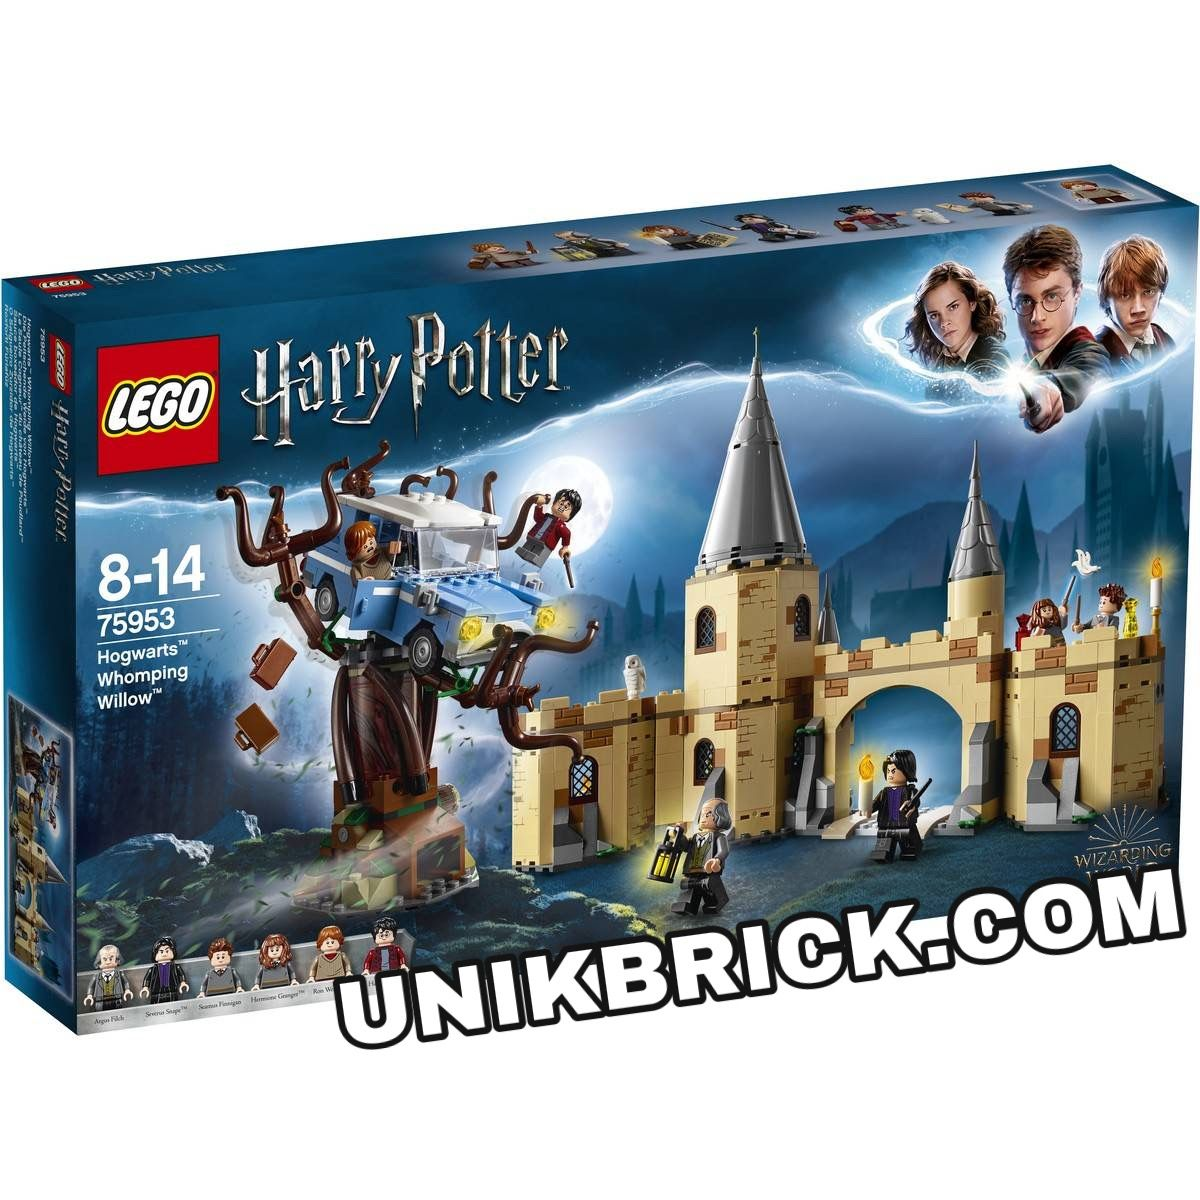 Lego Harry Potter 75953 Hogwarts Whomping Willow Giá Rẻ Unik Brick Hogwarts Harry Potter Lego Marvel